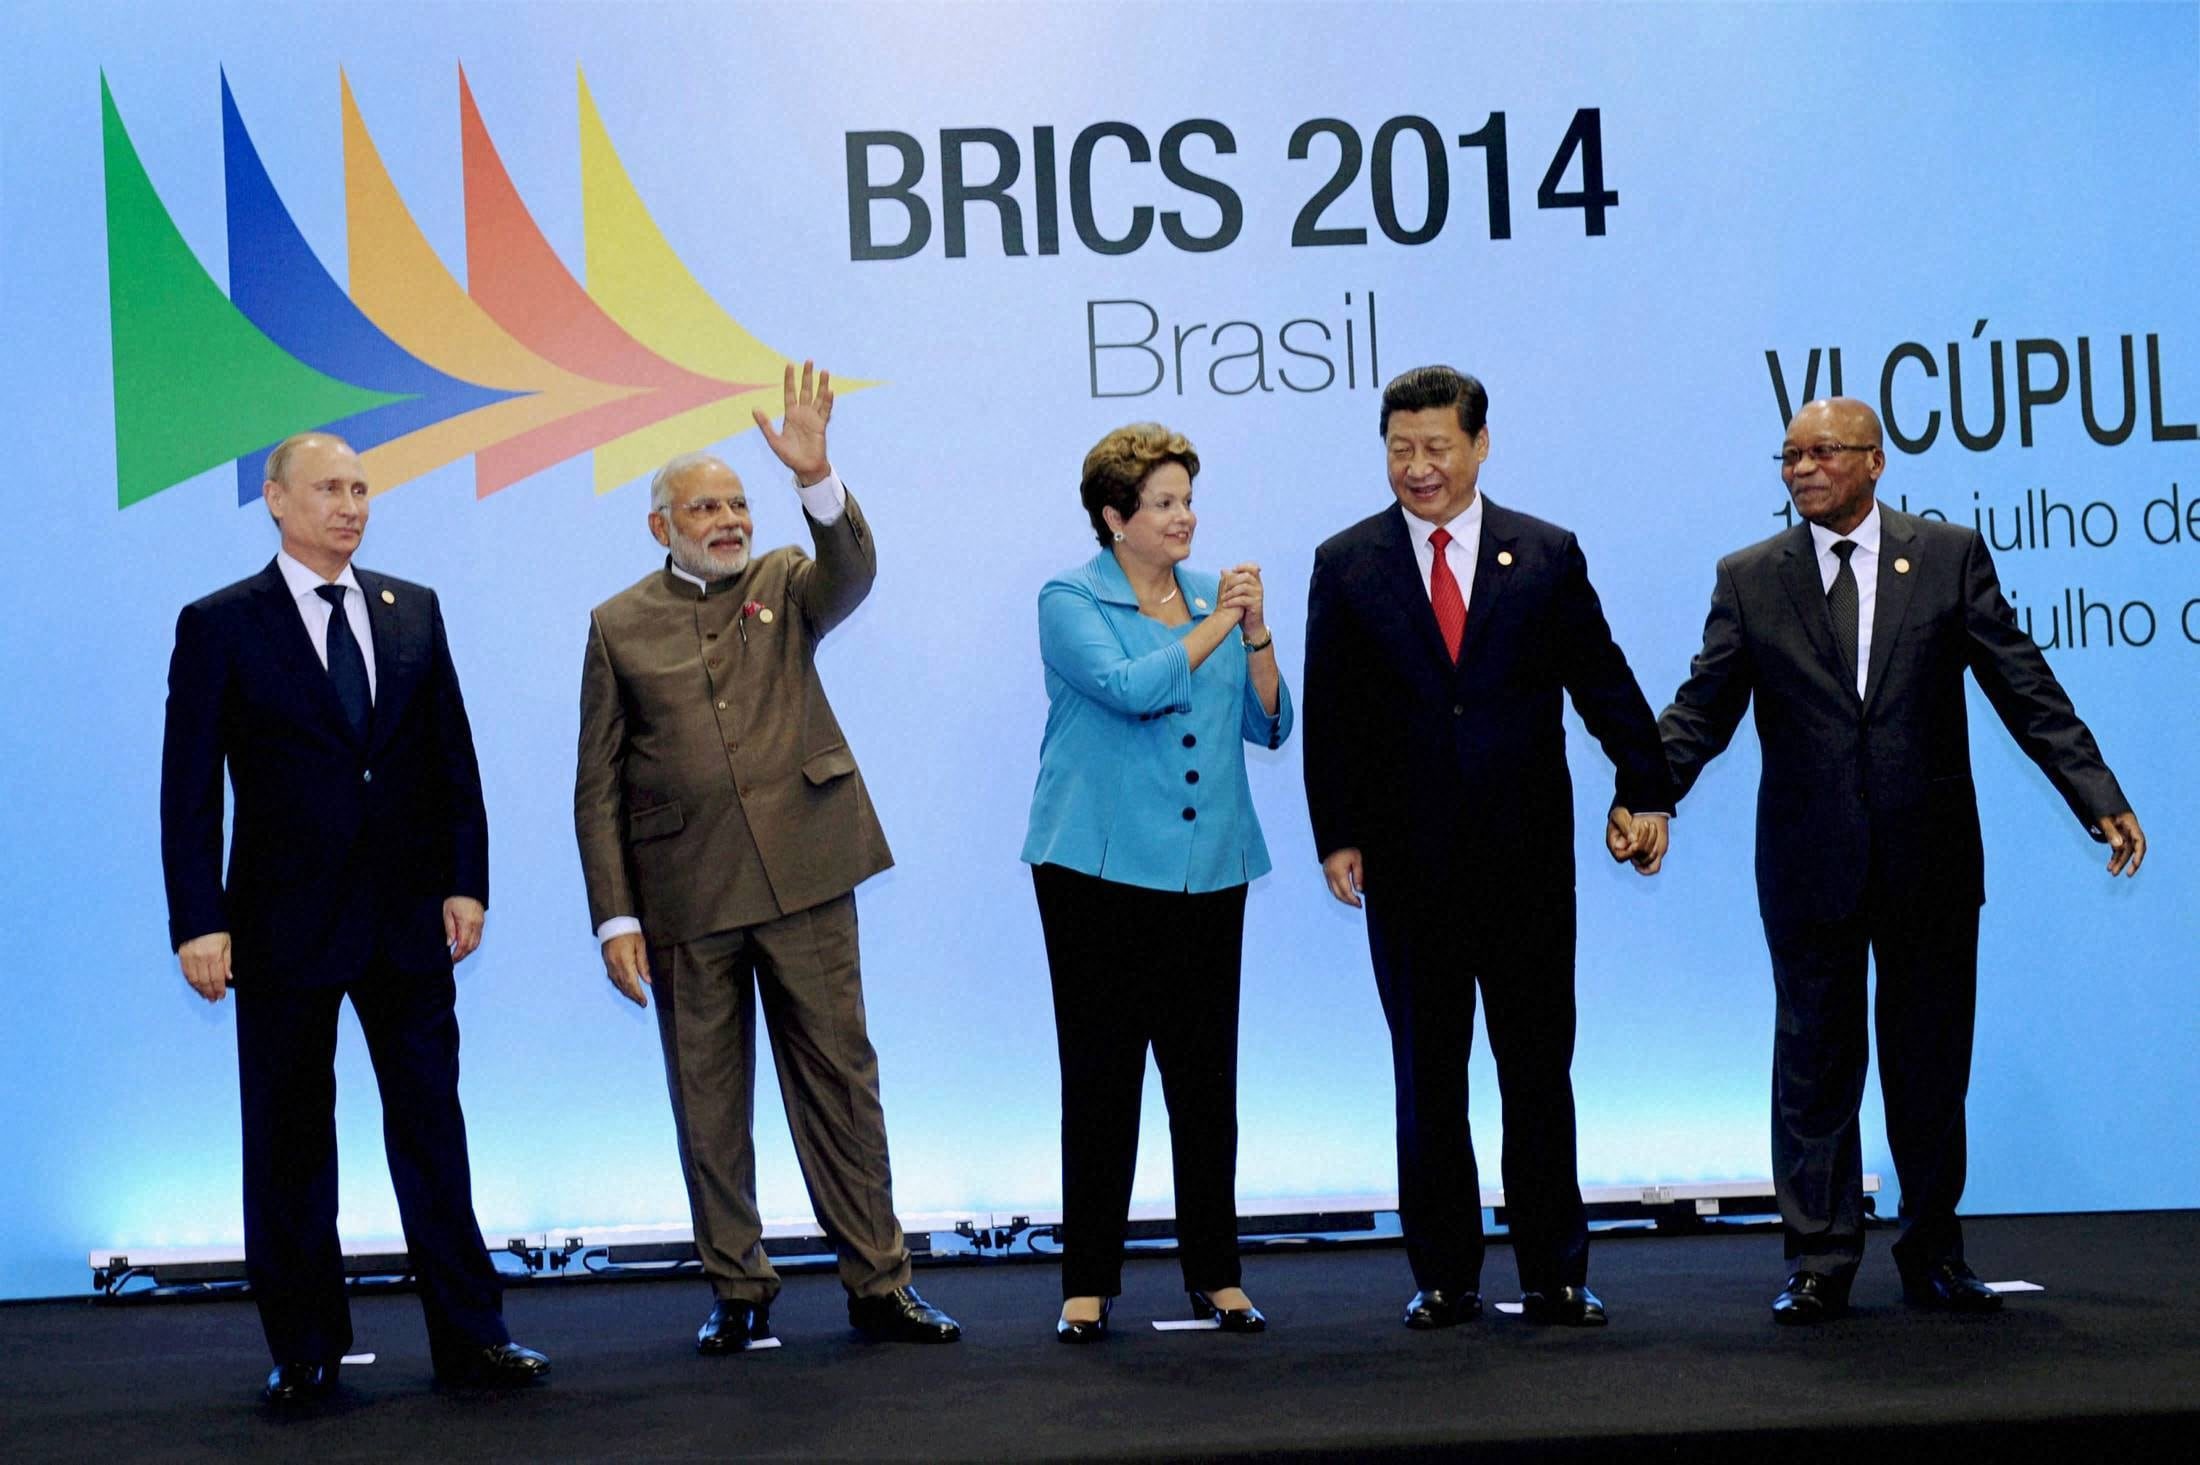 Prime Minister, Narendra Modi, Russian President, Vladimir Putin, Brazilian President, Dilma Rousseff, Chinese President, Xi Jinping, South African, President Jacob Zuma,  6th BRICS summit, Ceara events centre, Fortaleza, Brazil